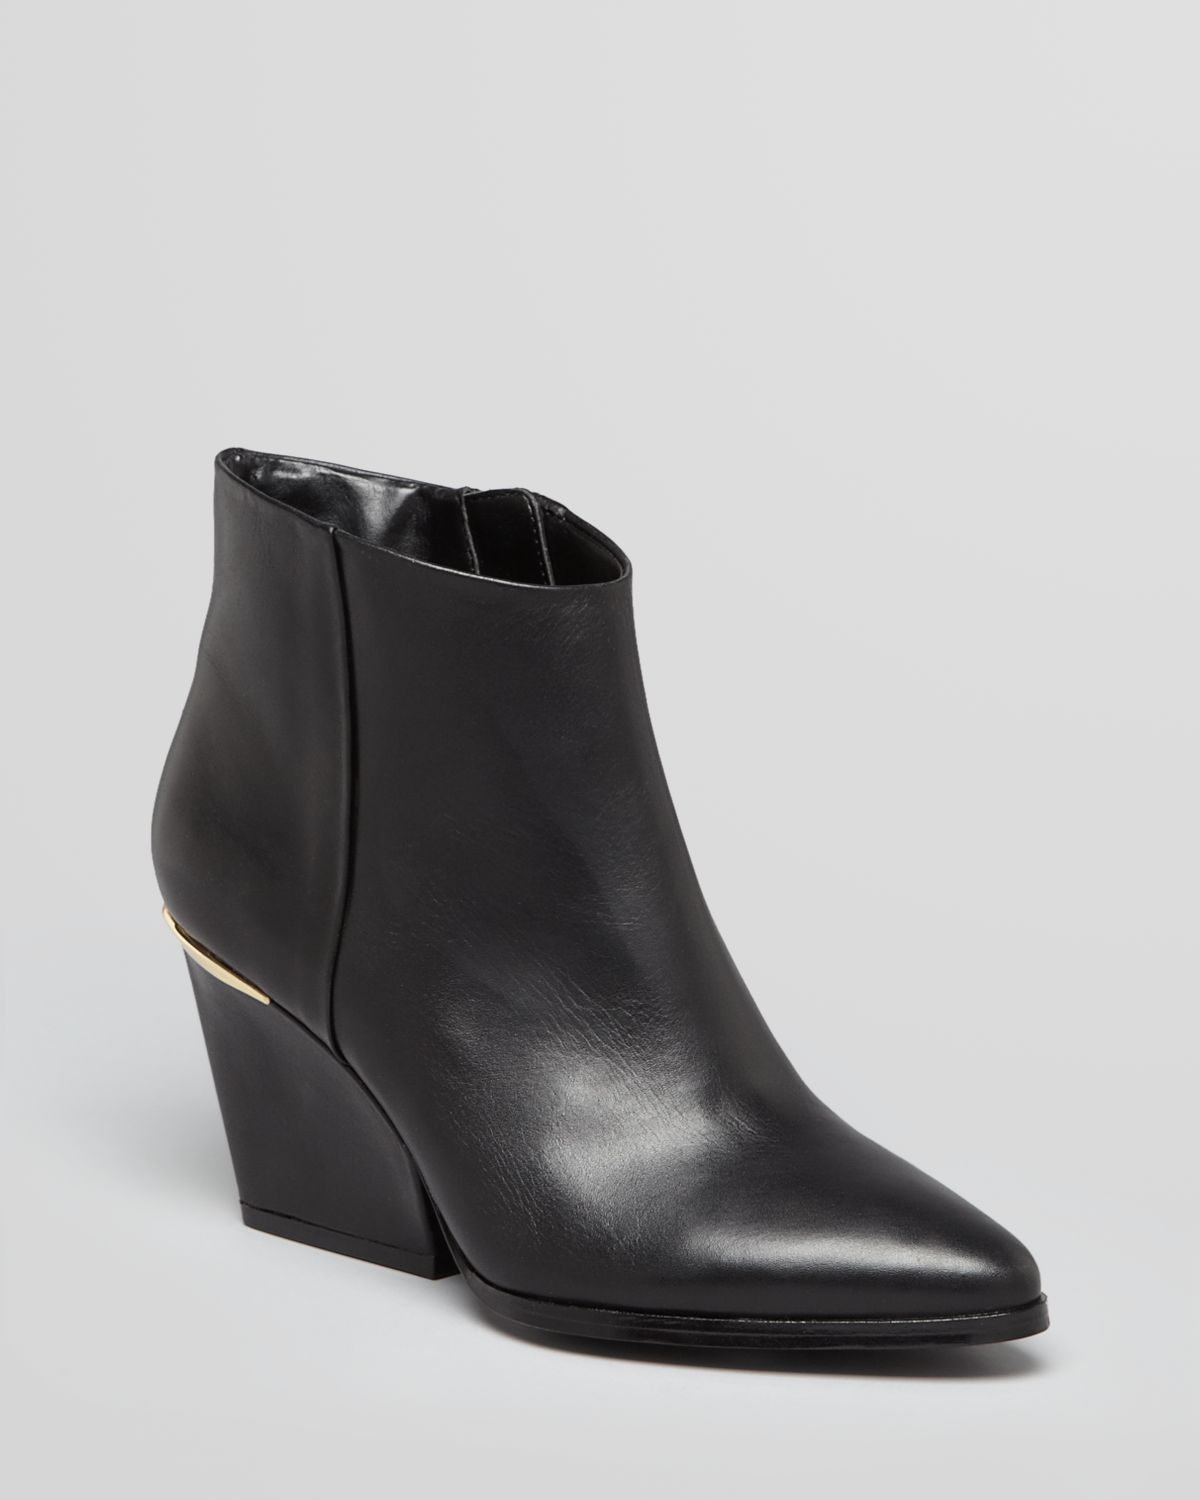 9 Pointed Toe Wedge Booties - Isoke Low Heel | Bloomingdale's